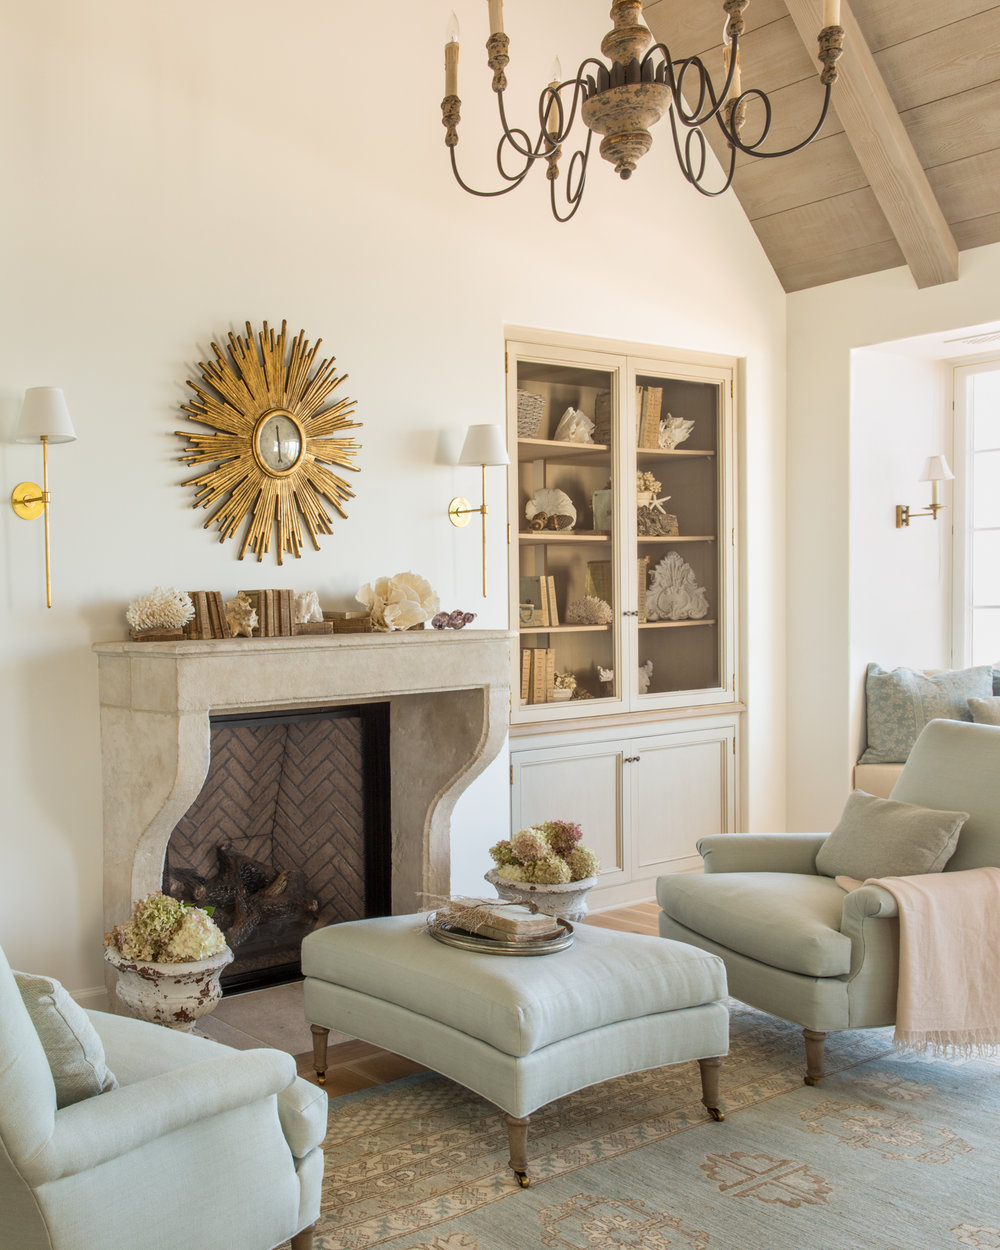 Beautiful Home Part 1: 12 Design Tips To Get Modern French Country Style Without